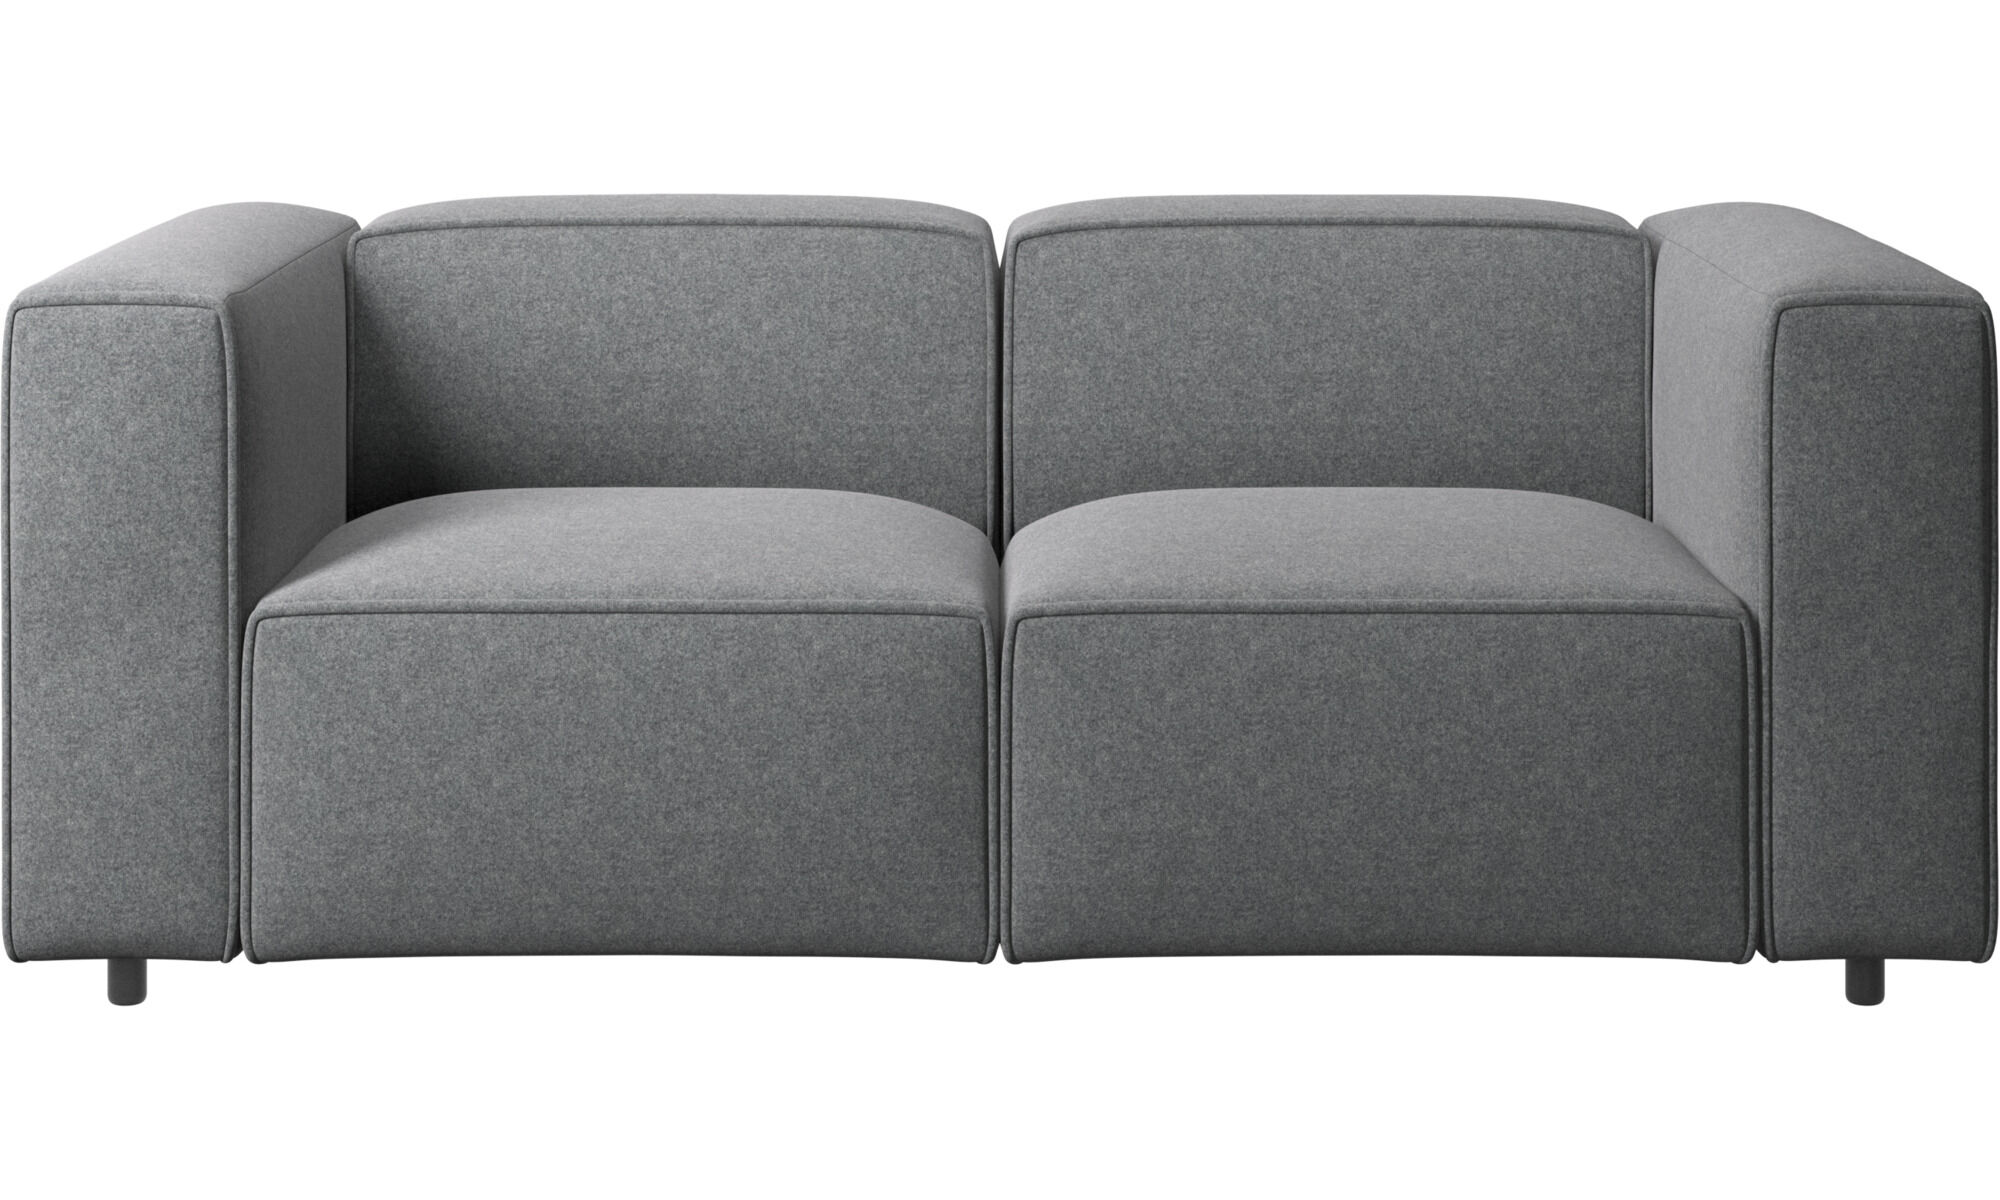 Genial 2 Seater Sofas   Carmo Sofa   Gray   Fabric ...